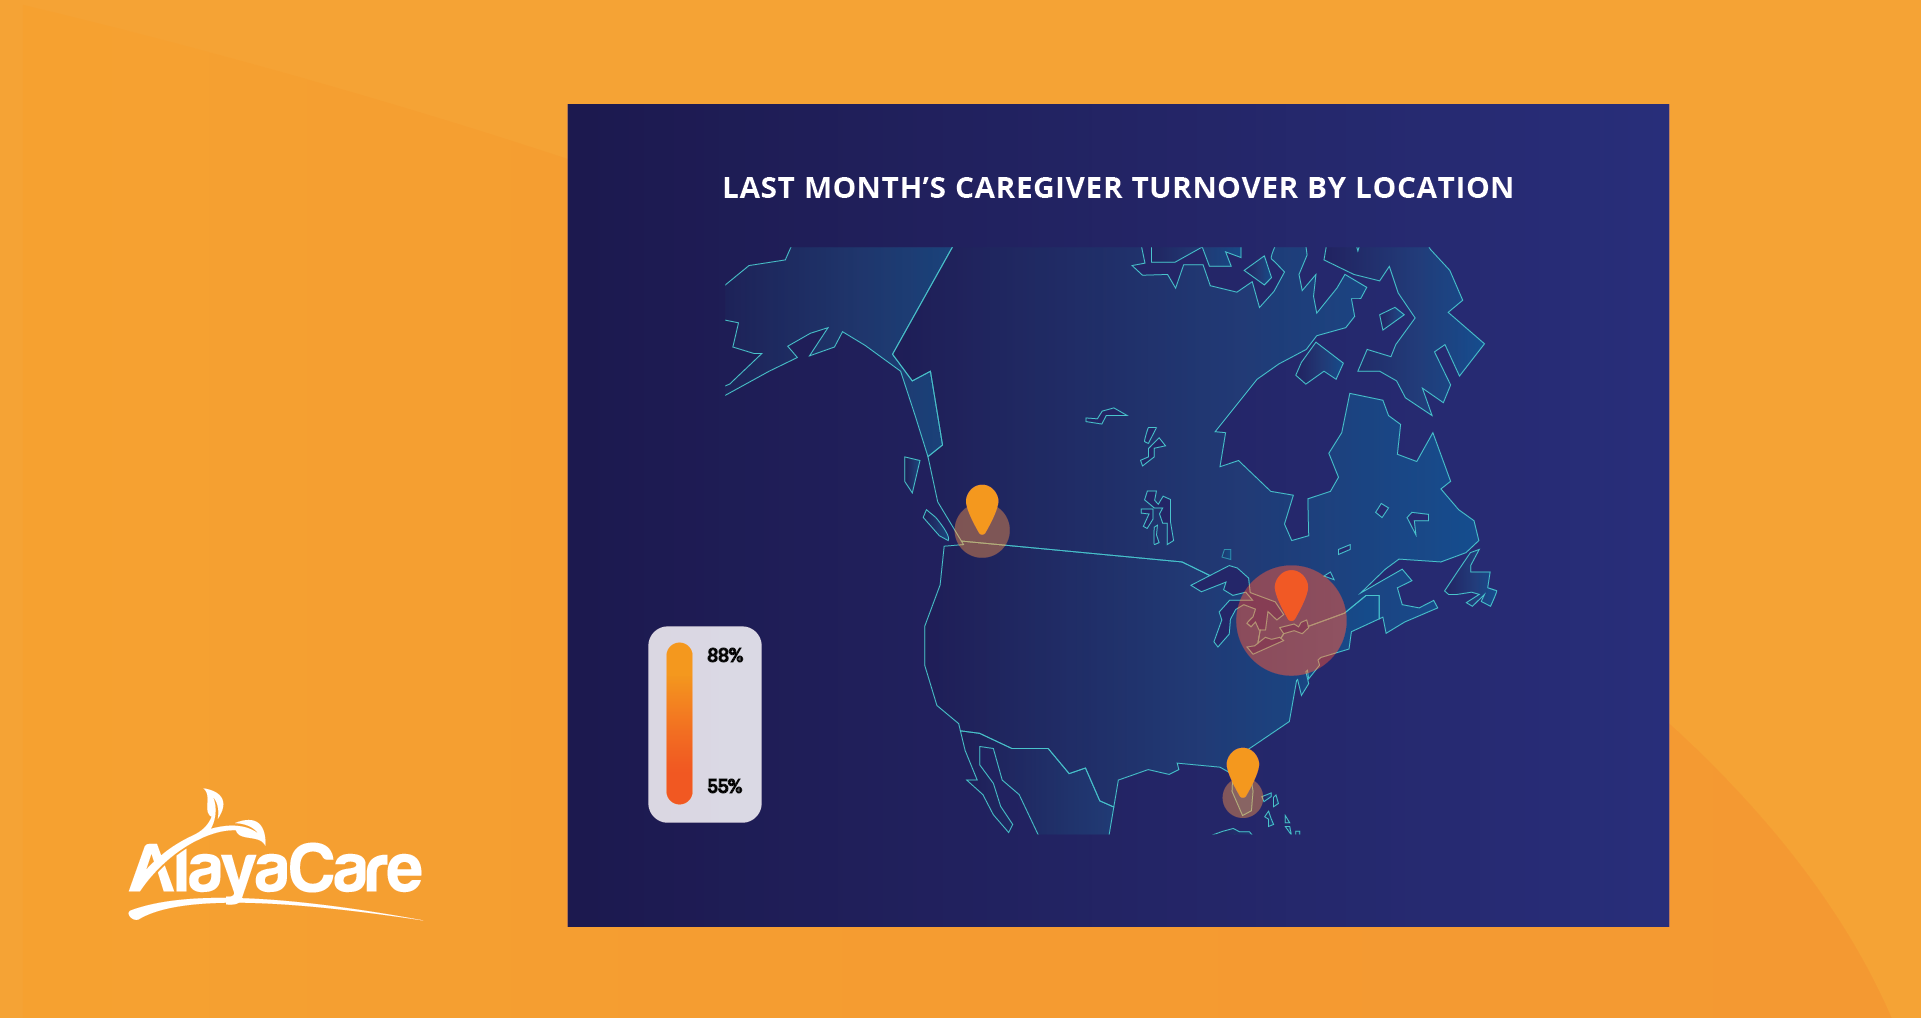 Caregiver turnover by location